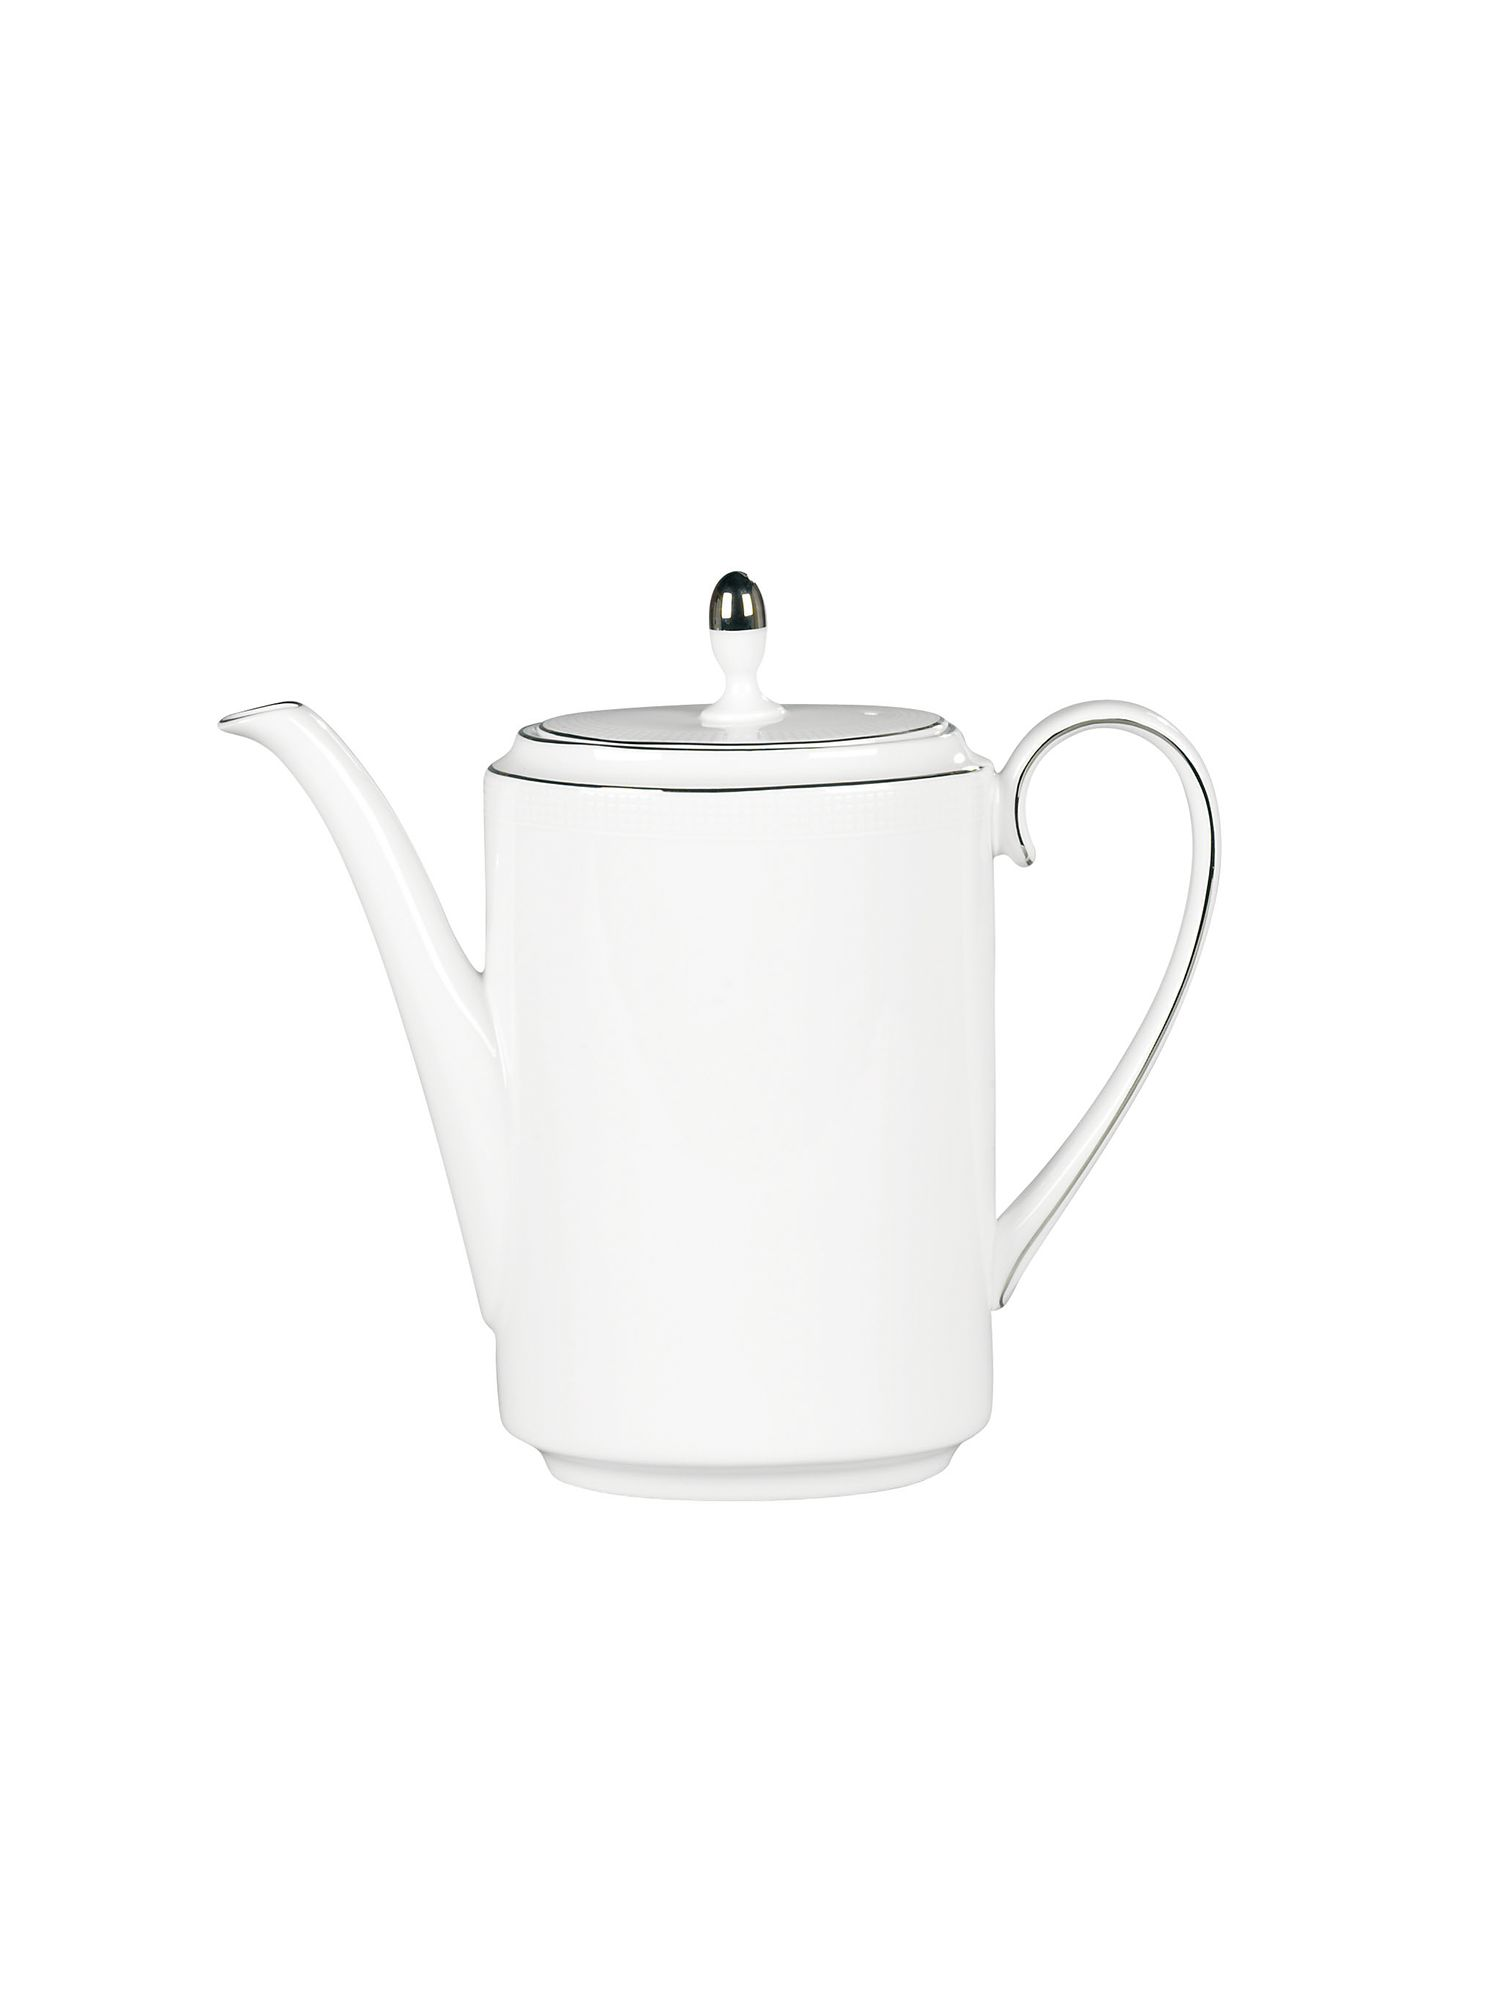 Vera Wang blanc sur blanc coffee pot